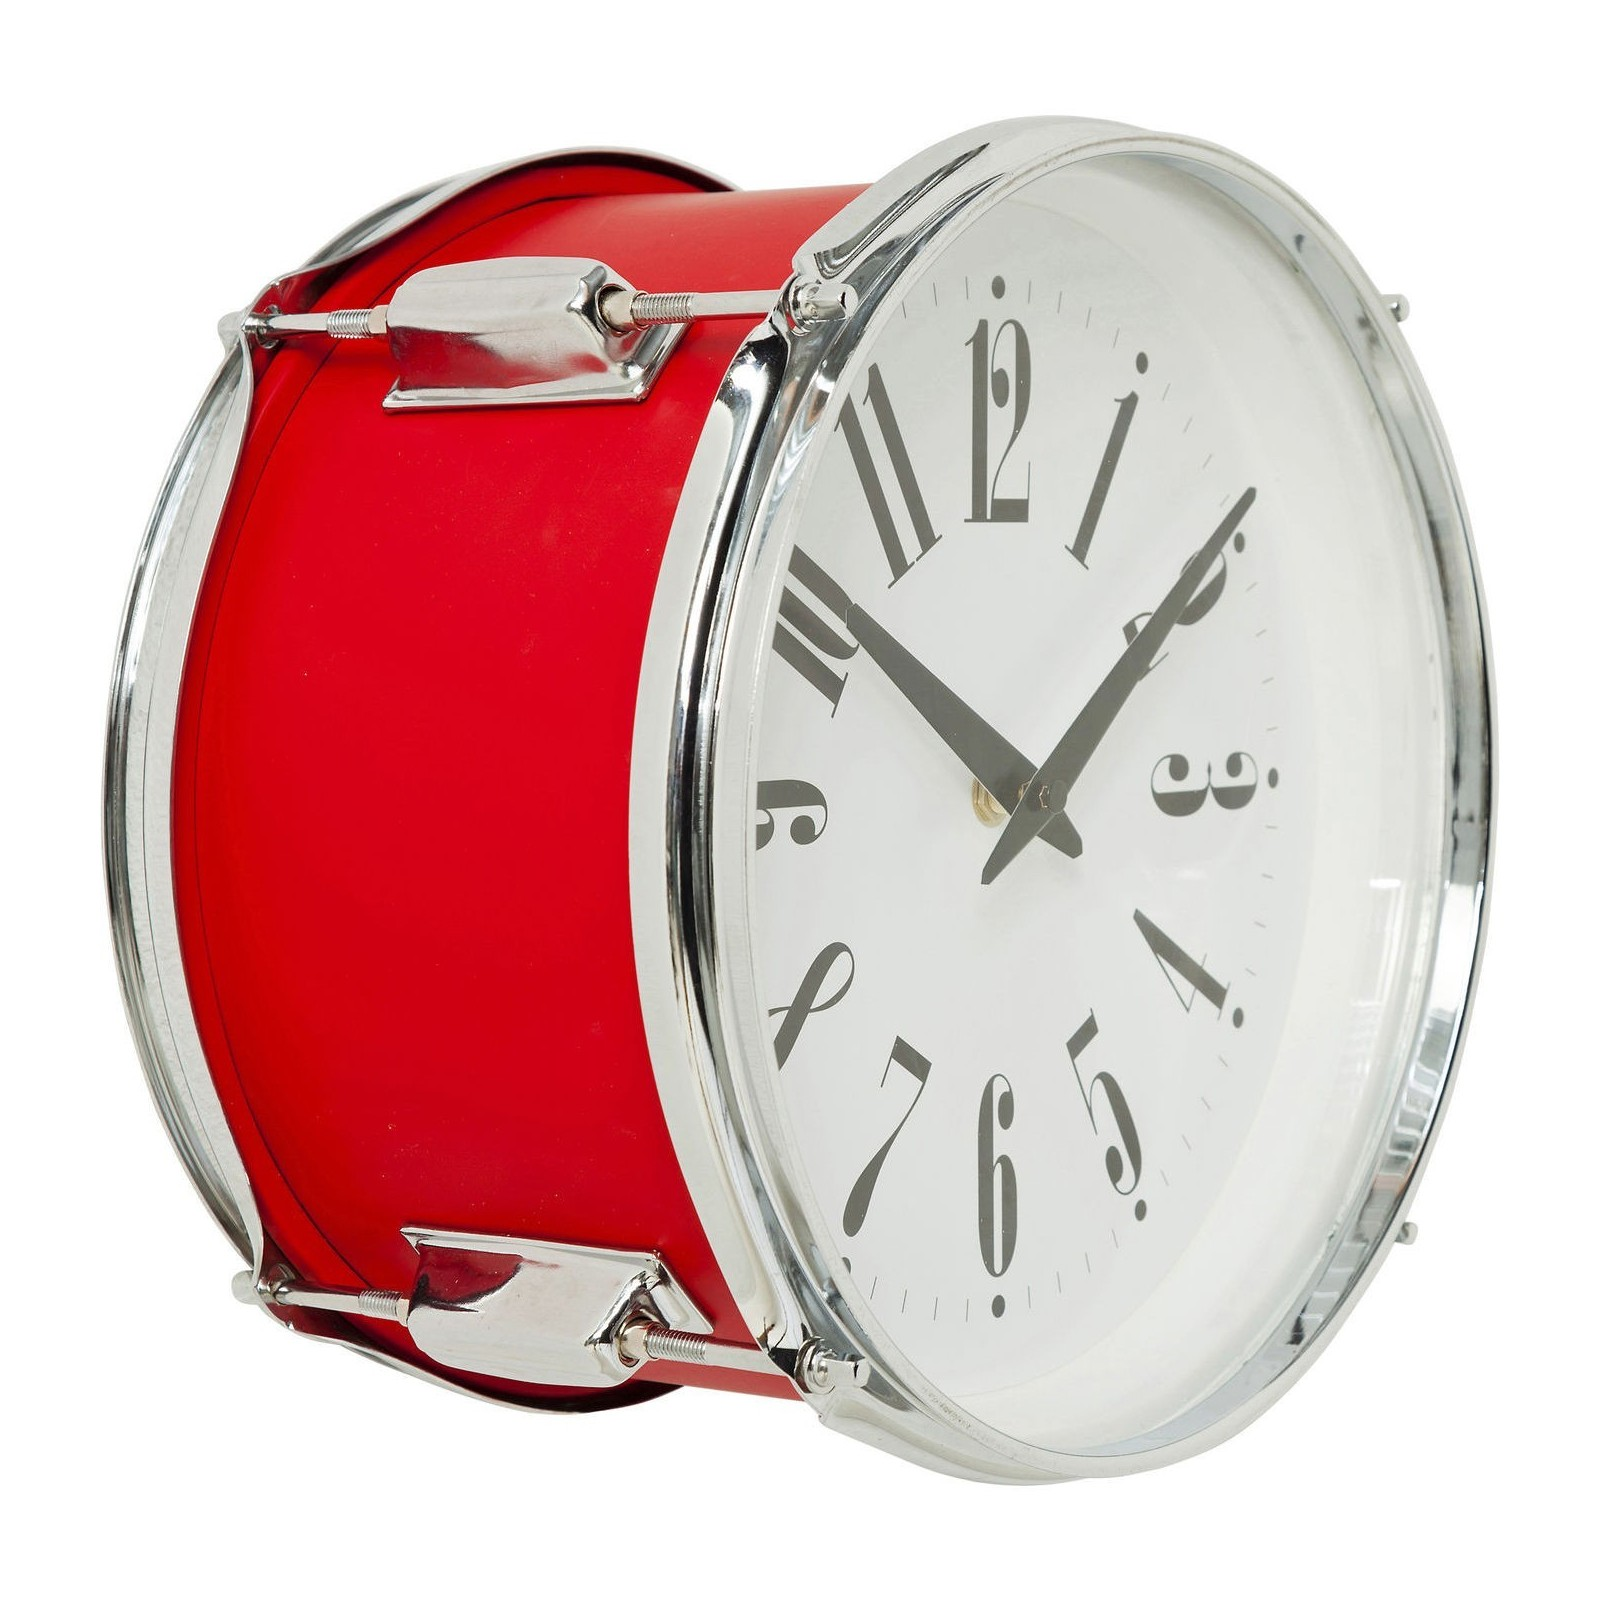 horloge murale drum rouge 28cm kare design. Black Bedroom Furniture Sets. Home Design Ideas